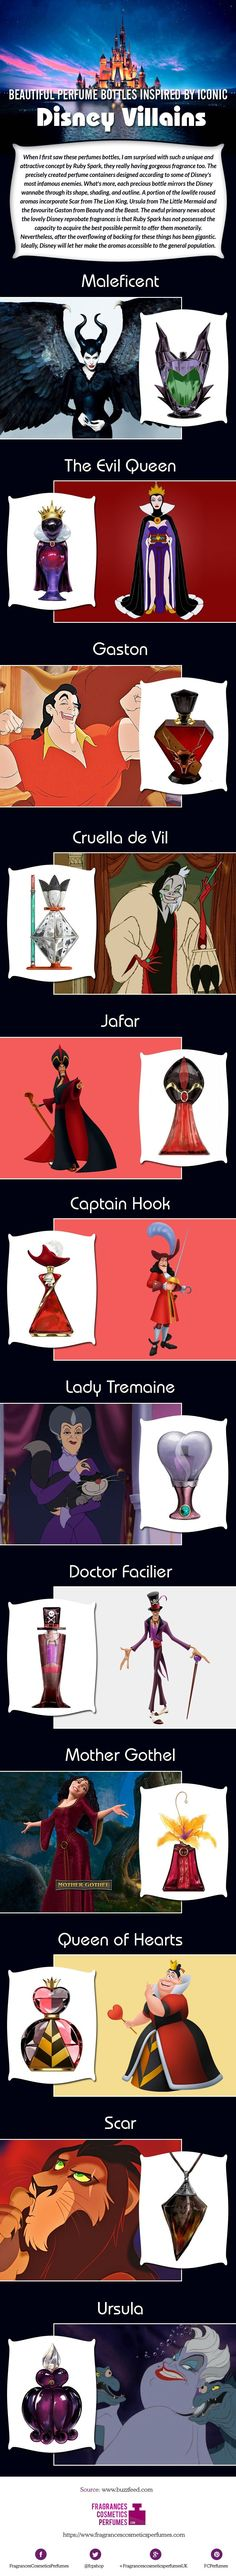 Beautiful Perfume Bottles Inspired by Iconic Disney Villains #Infographic…